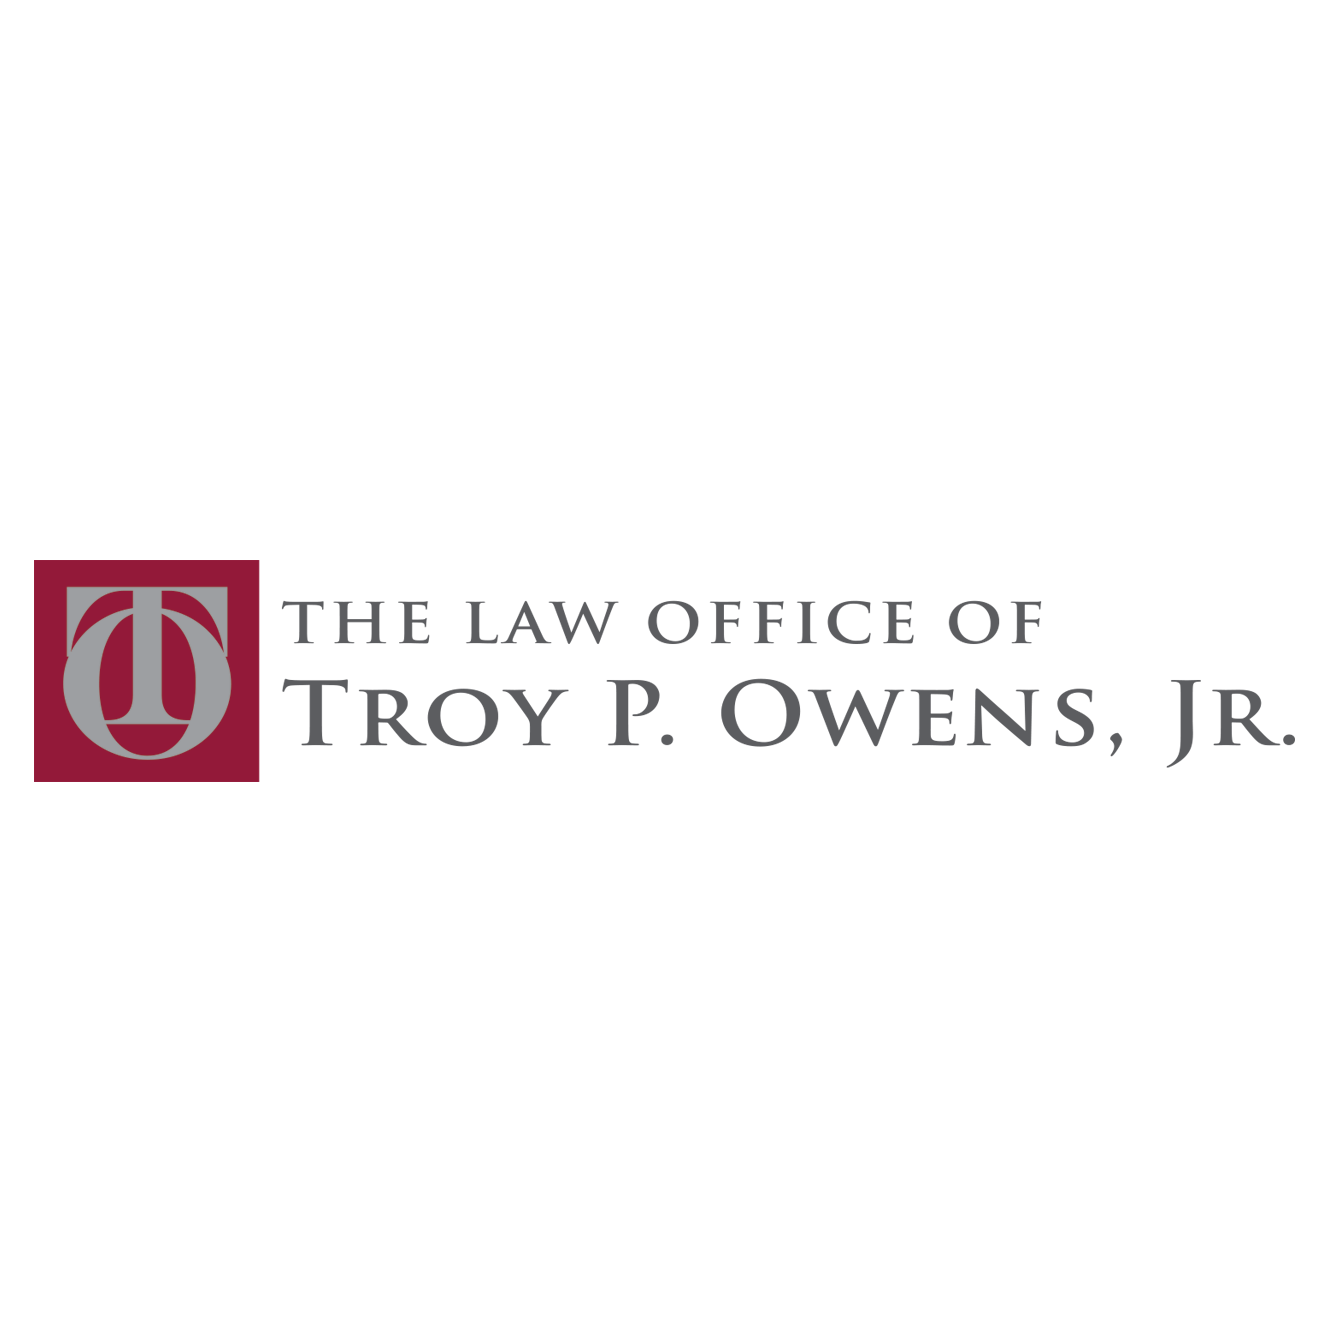 The Law Office Of Troy P. Owens, Jr., APC